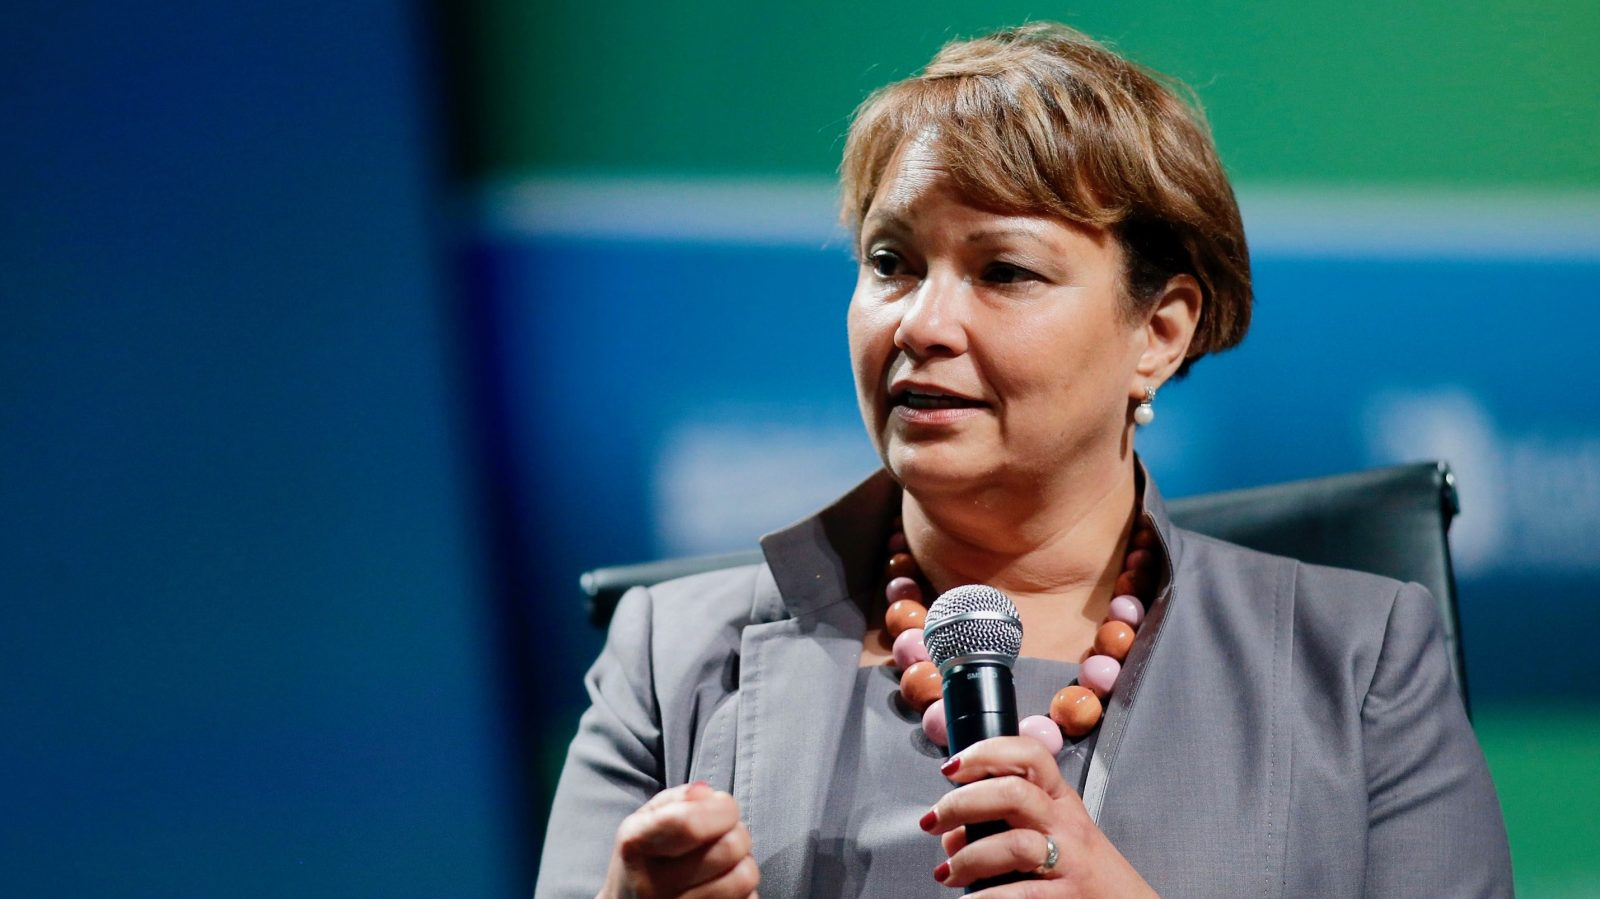 Lisa Jackson explains how Apple balances innovation with sustainability in new interview